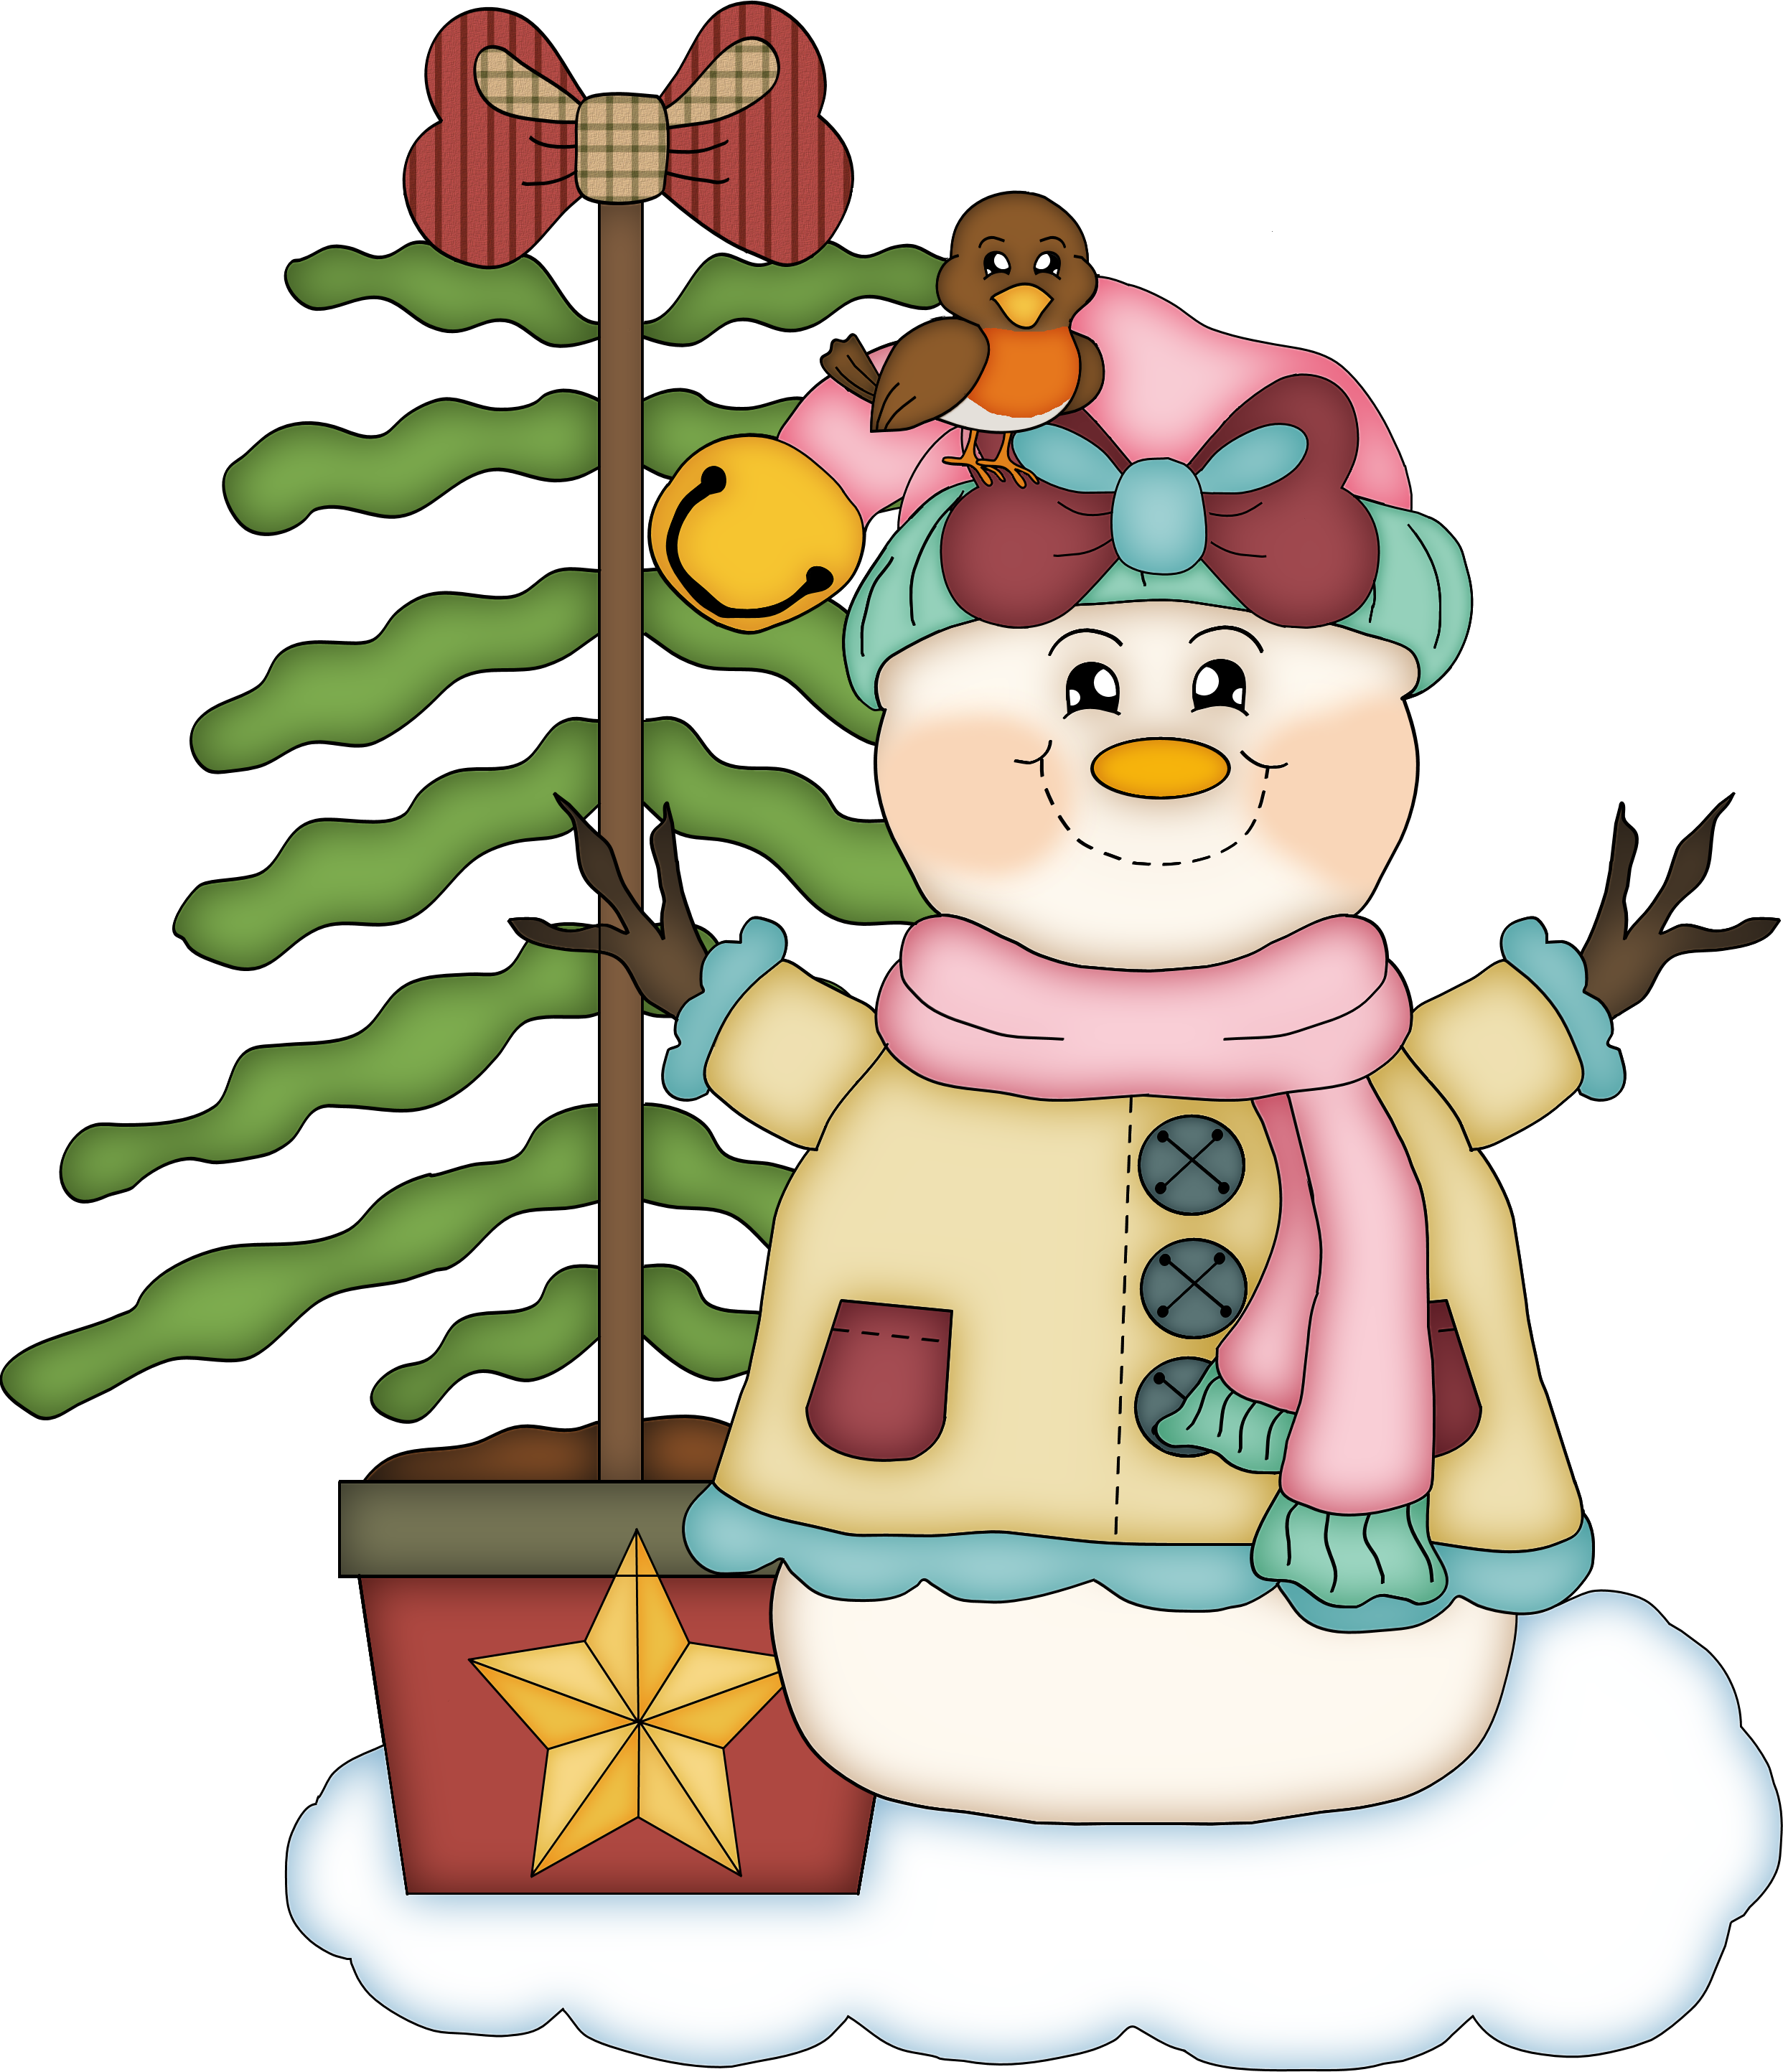 Peace clipart 4th sunday advent. Christmas printable packet and